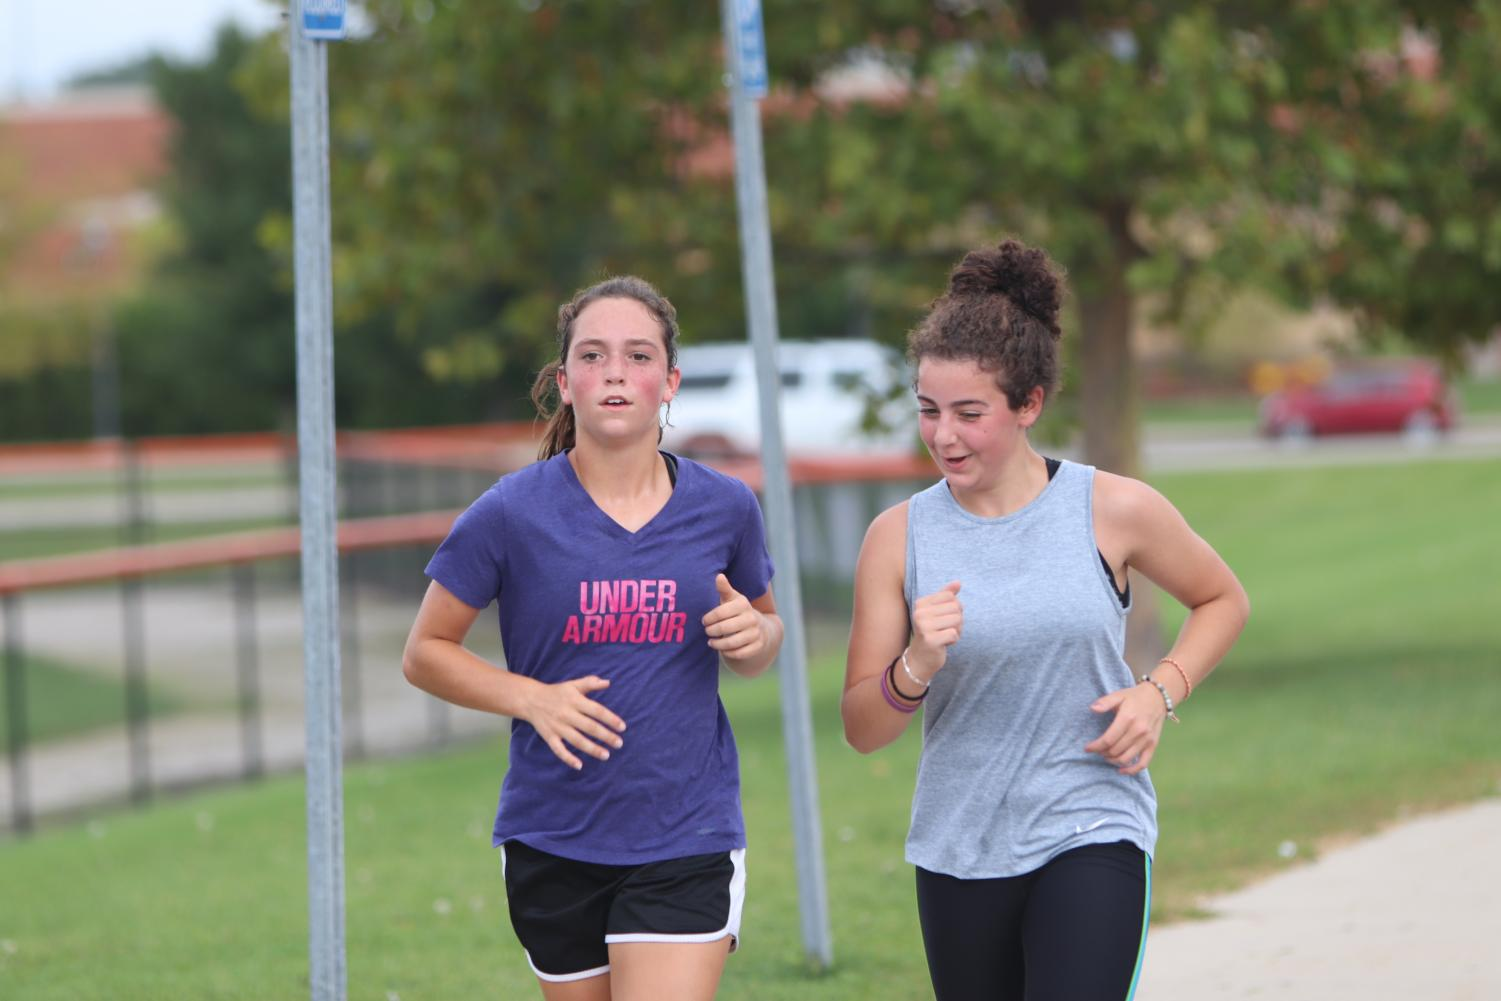 Freshmen Taylor Huntoon (left) and Angelina Vitarelli (right) run together during practice. Both girls are members of the Fenton cross country team